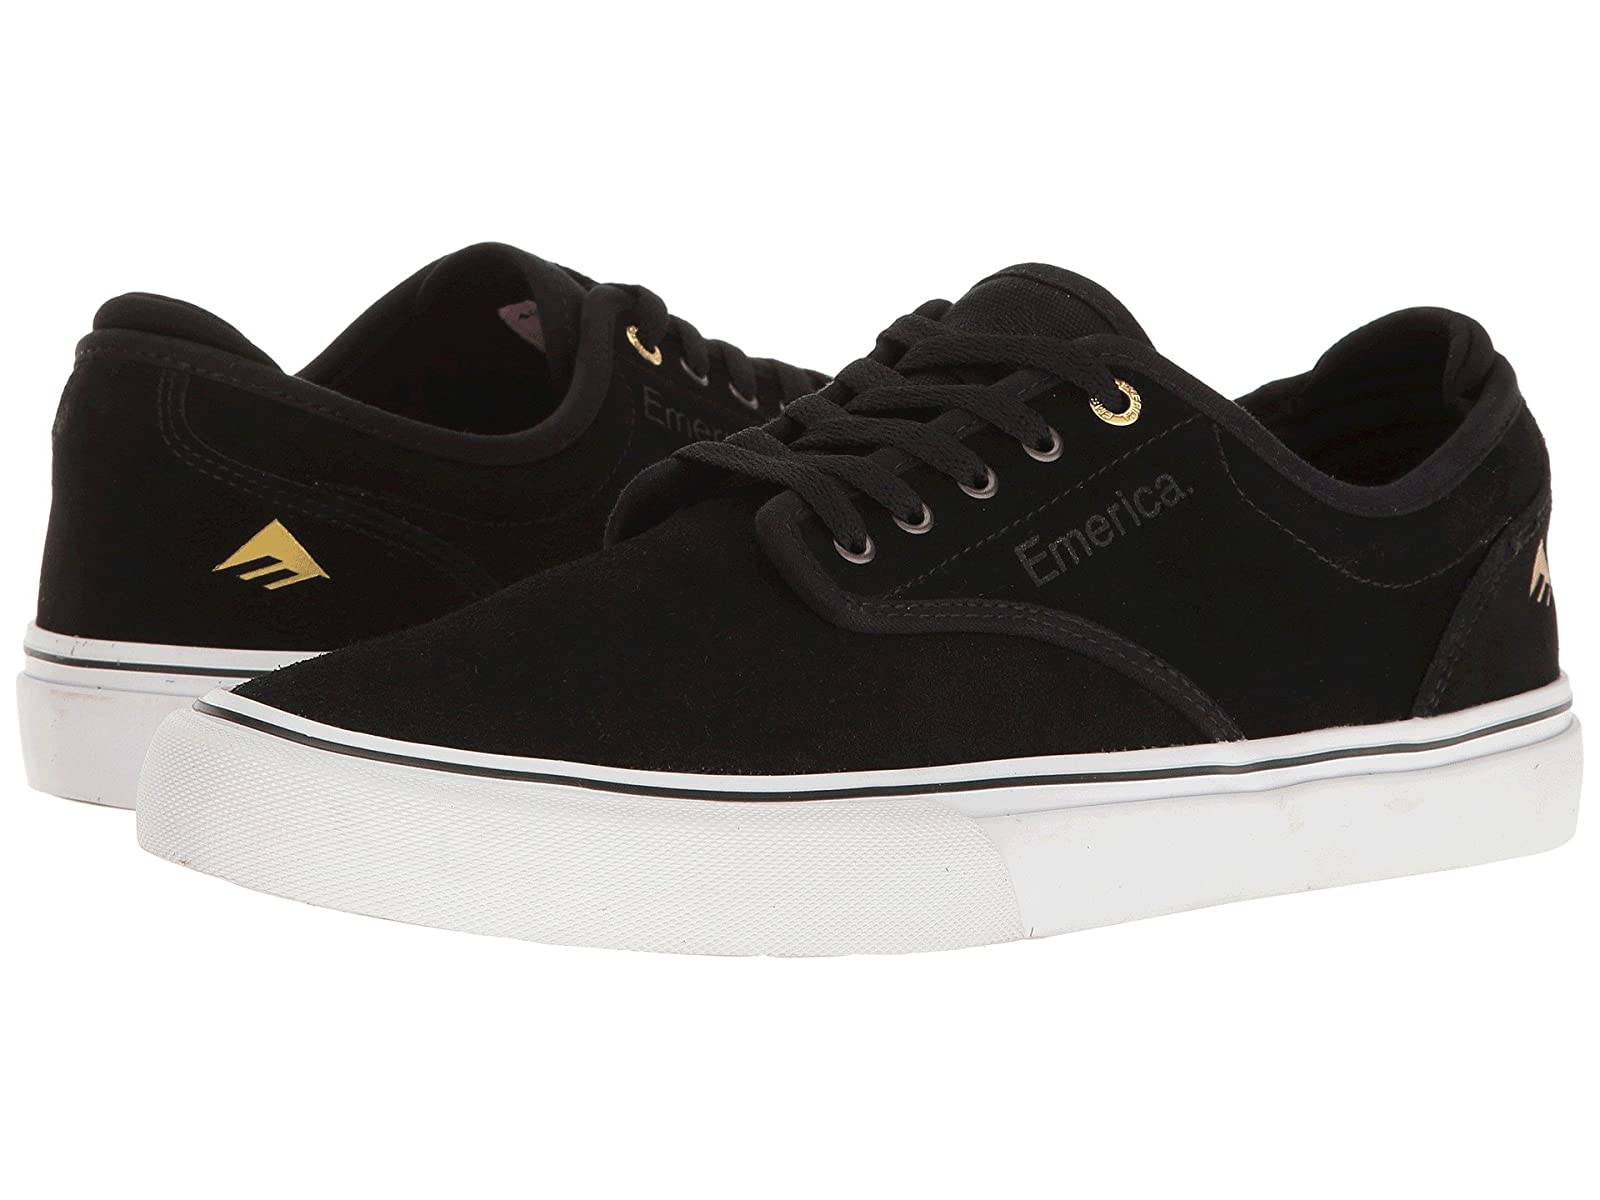 Emerica Wino G6Atmospheric grades have affordable shoes